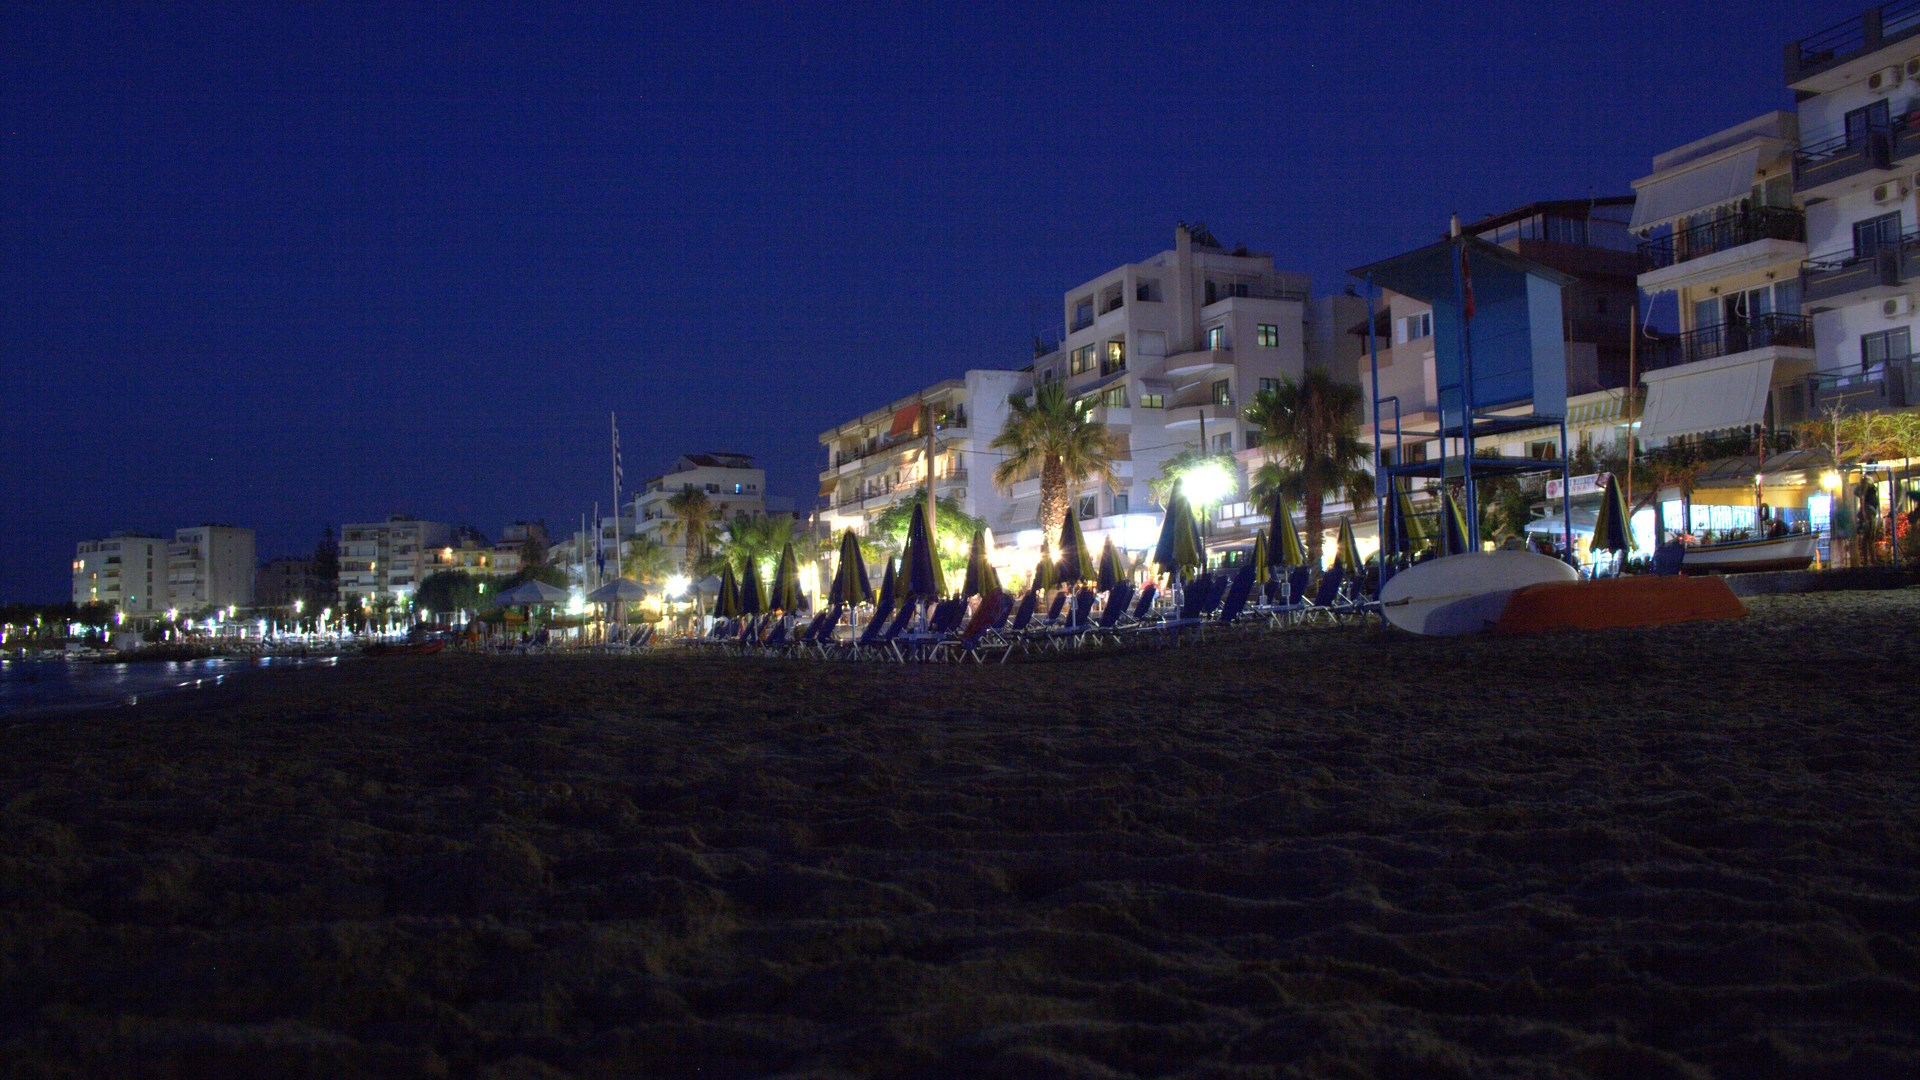 Nea Chora Beach, Chania - Crete | 15 Sep 2014  | Alargo